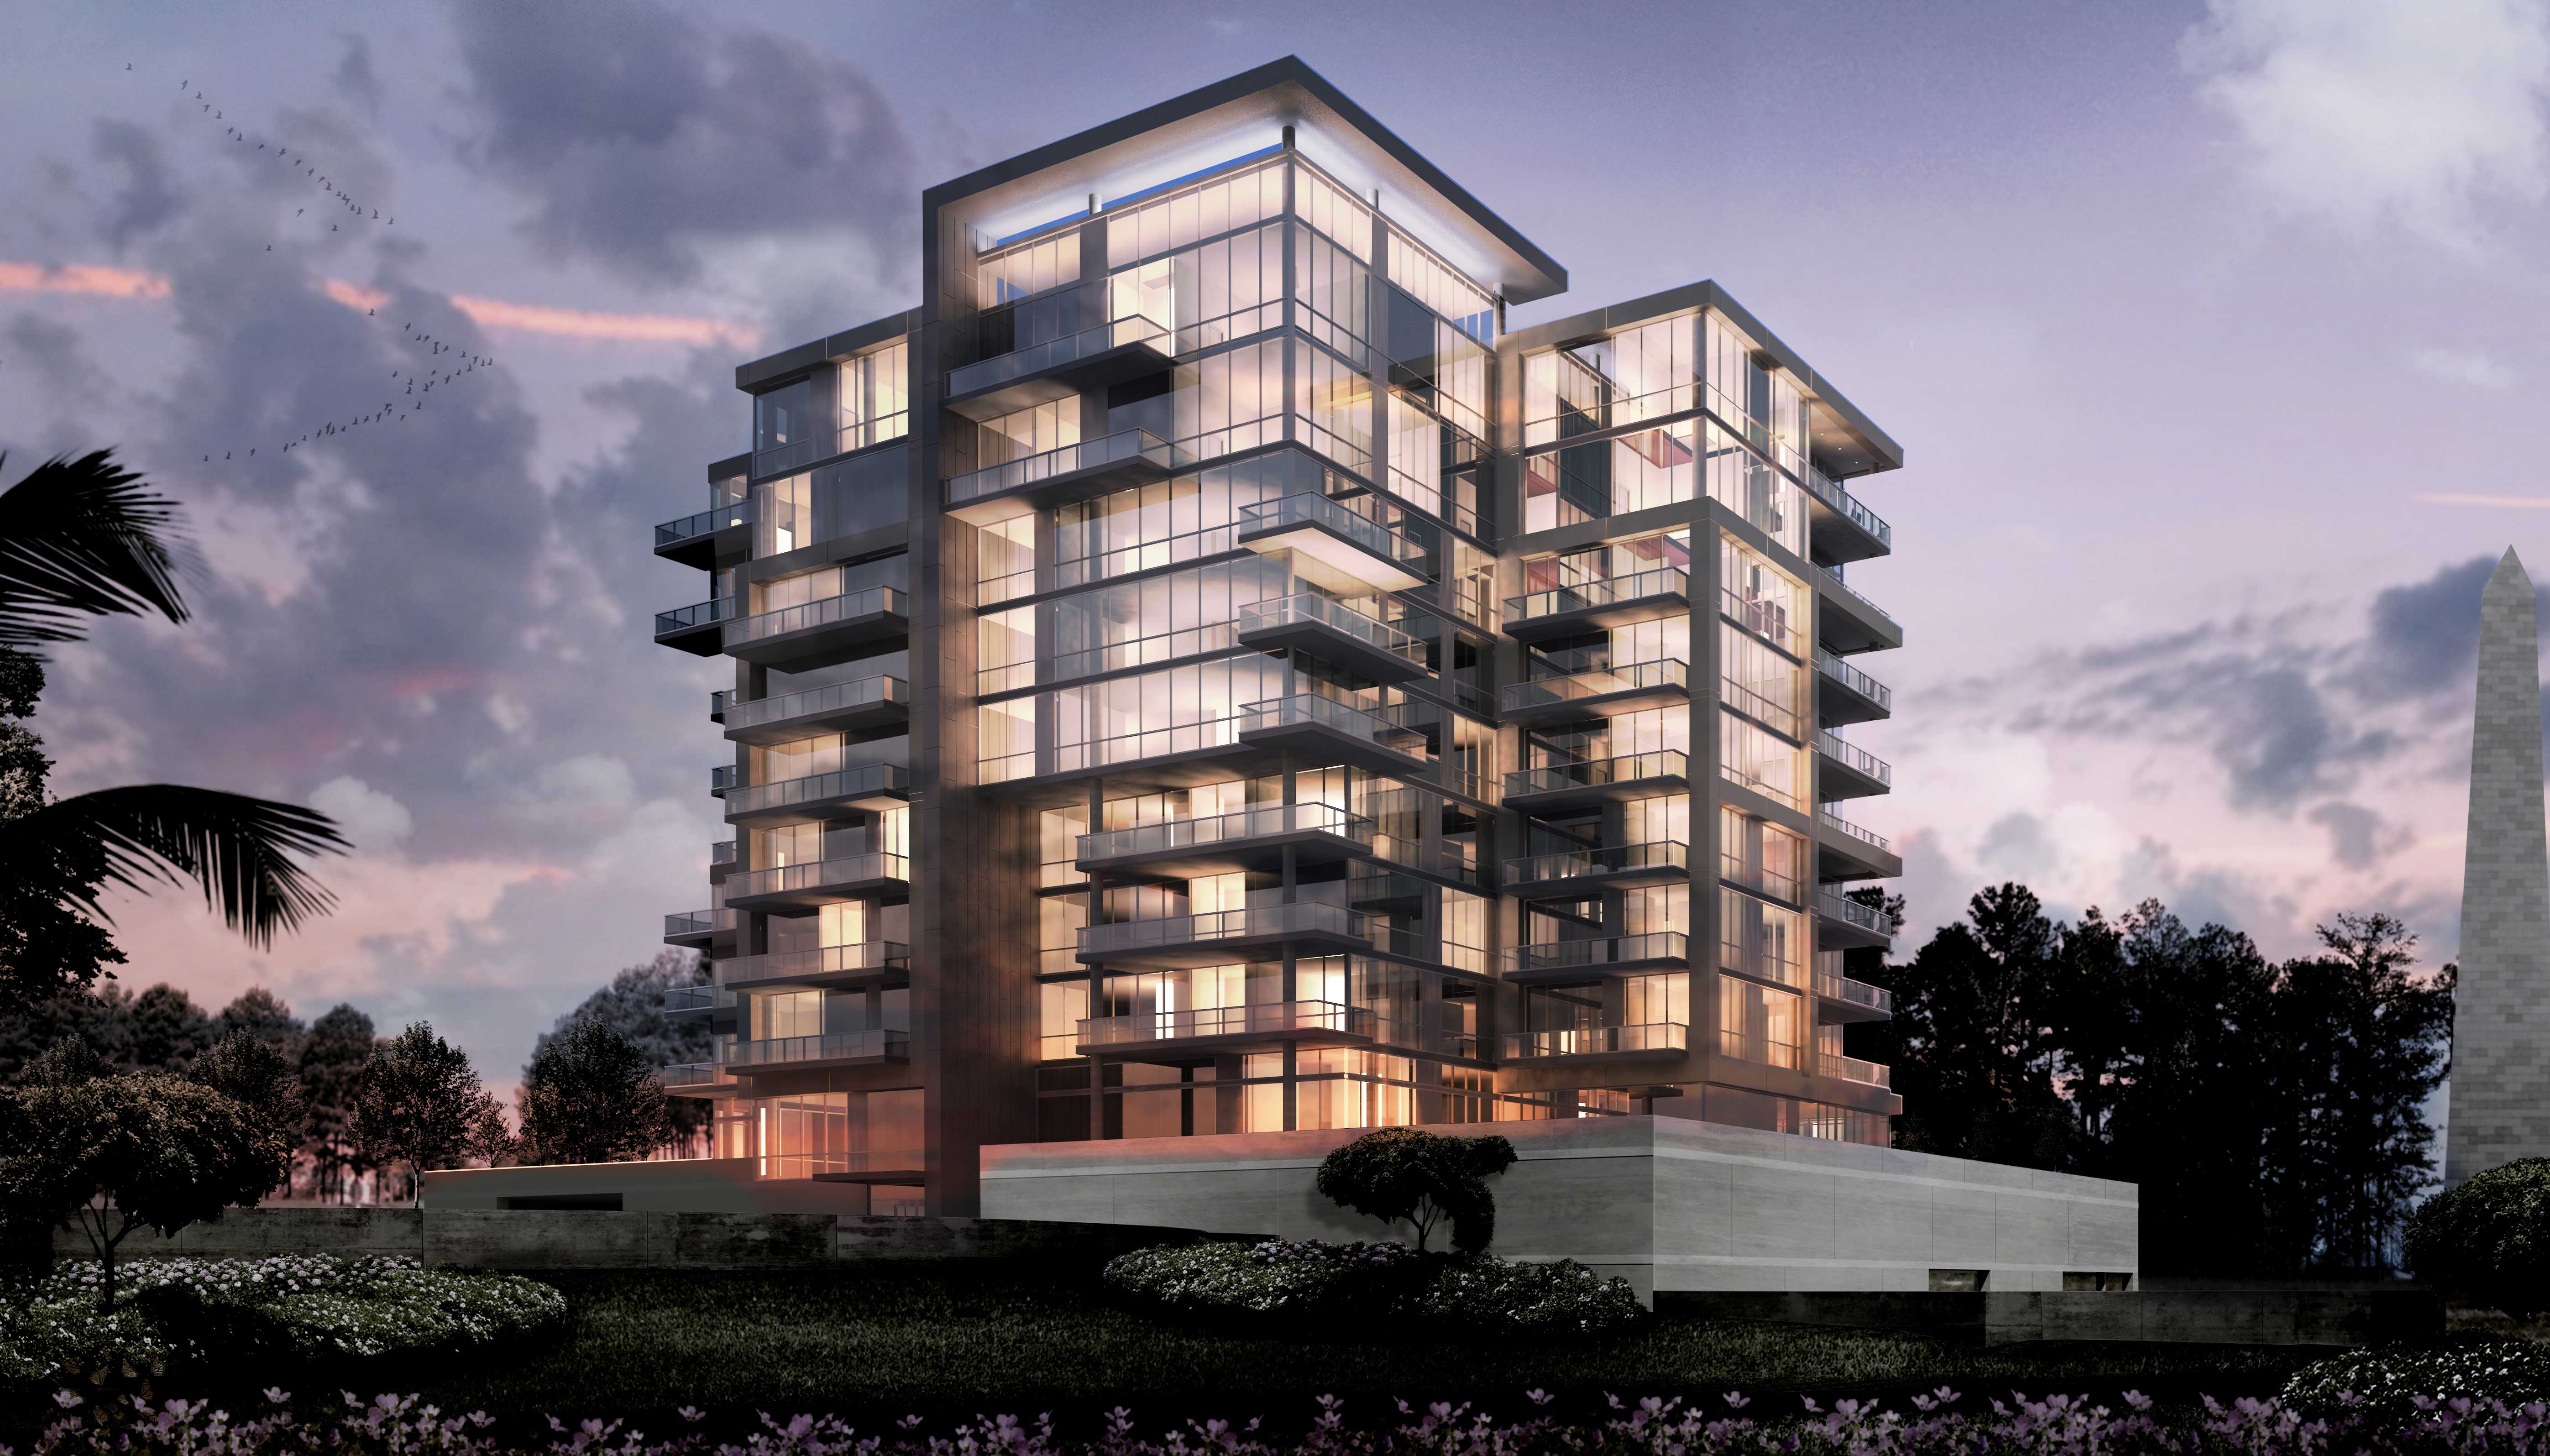 Eleven Eleven Luxury Condominiums